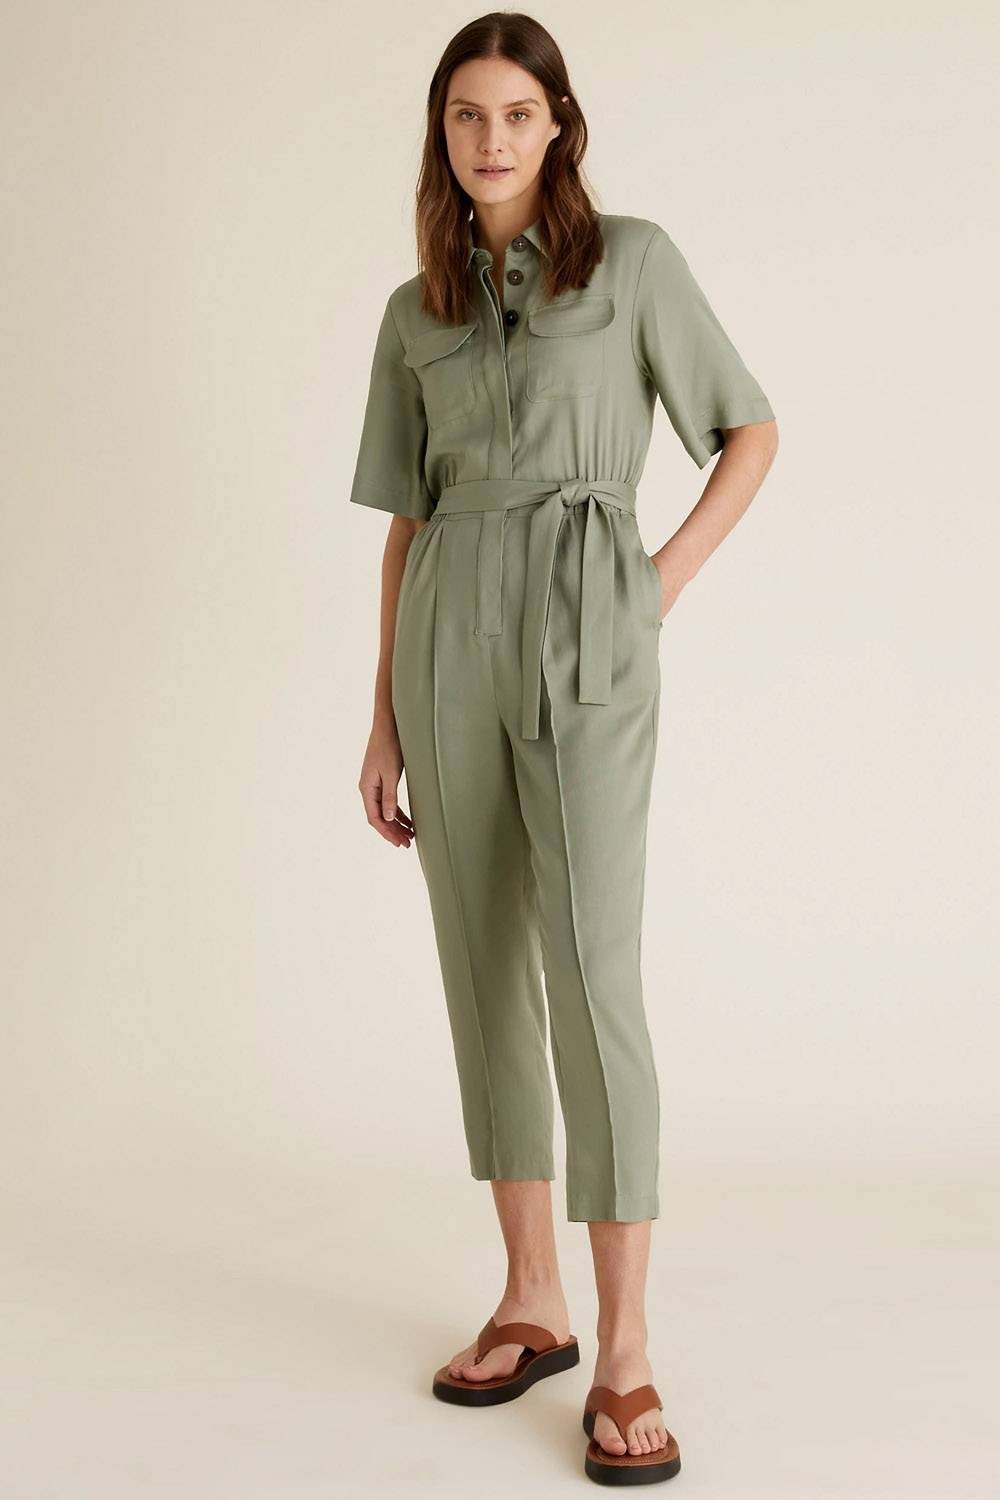 marks spencer sustainable cheap jumpsuit